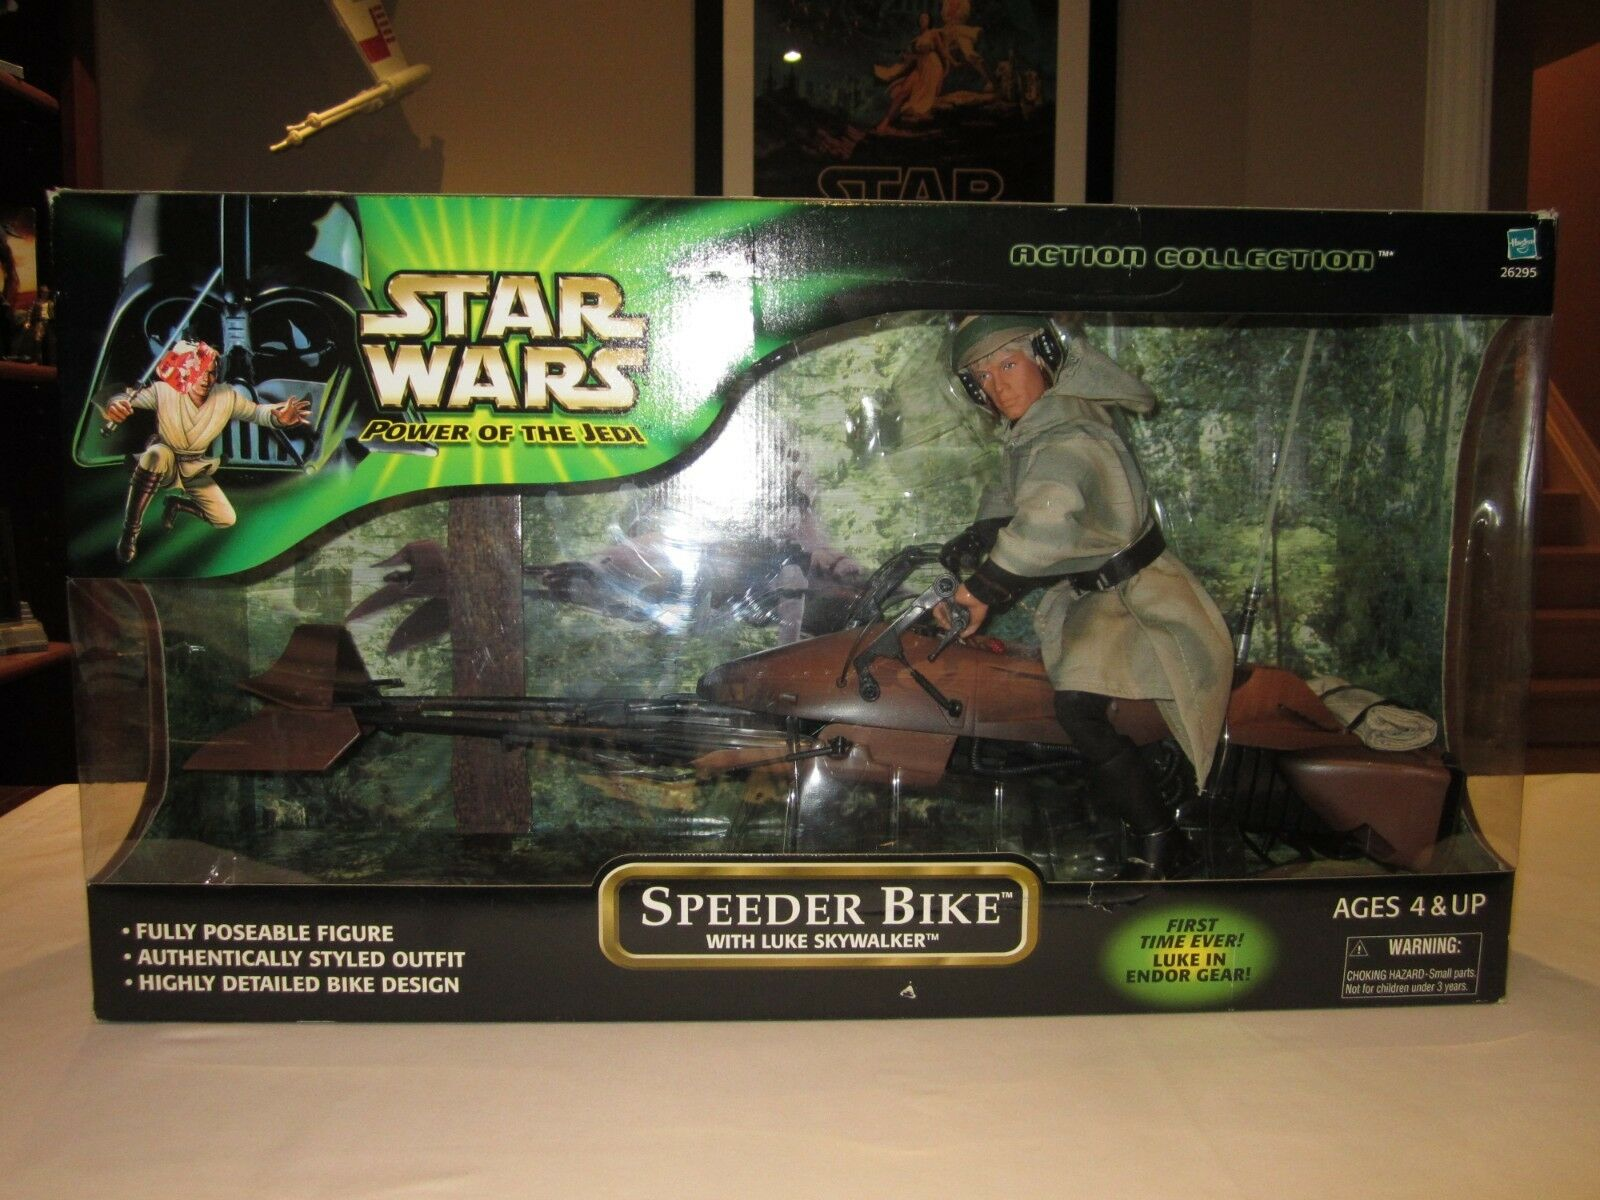 "Star Wars 12"" FIGURE POWER OF THE JEDI SPEEDER BIKE WITH LUKE SKYWALKER - 2001"